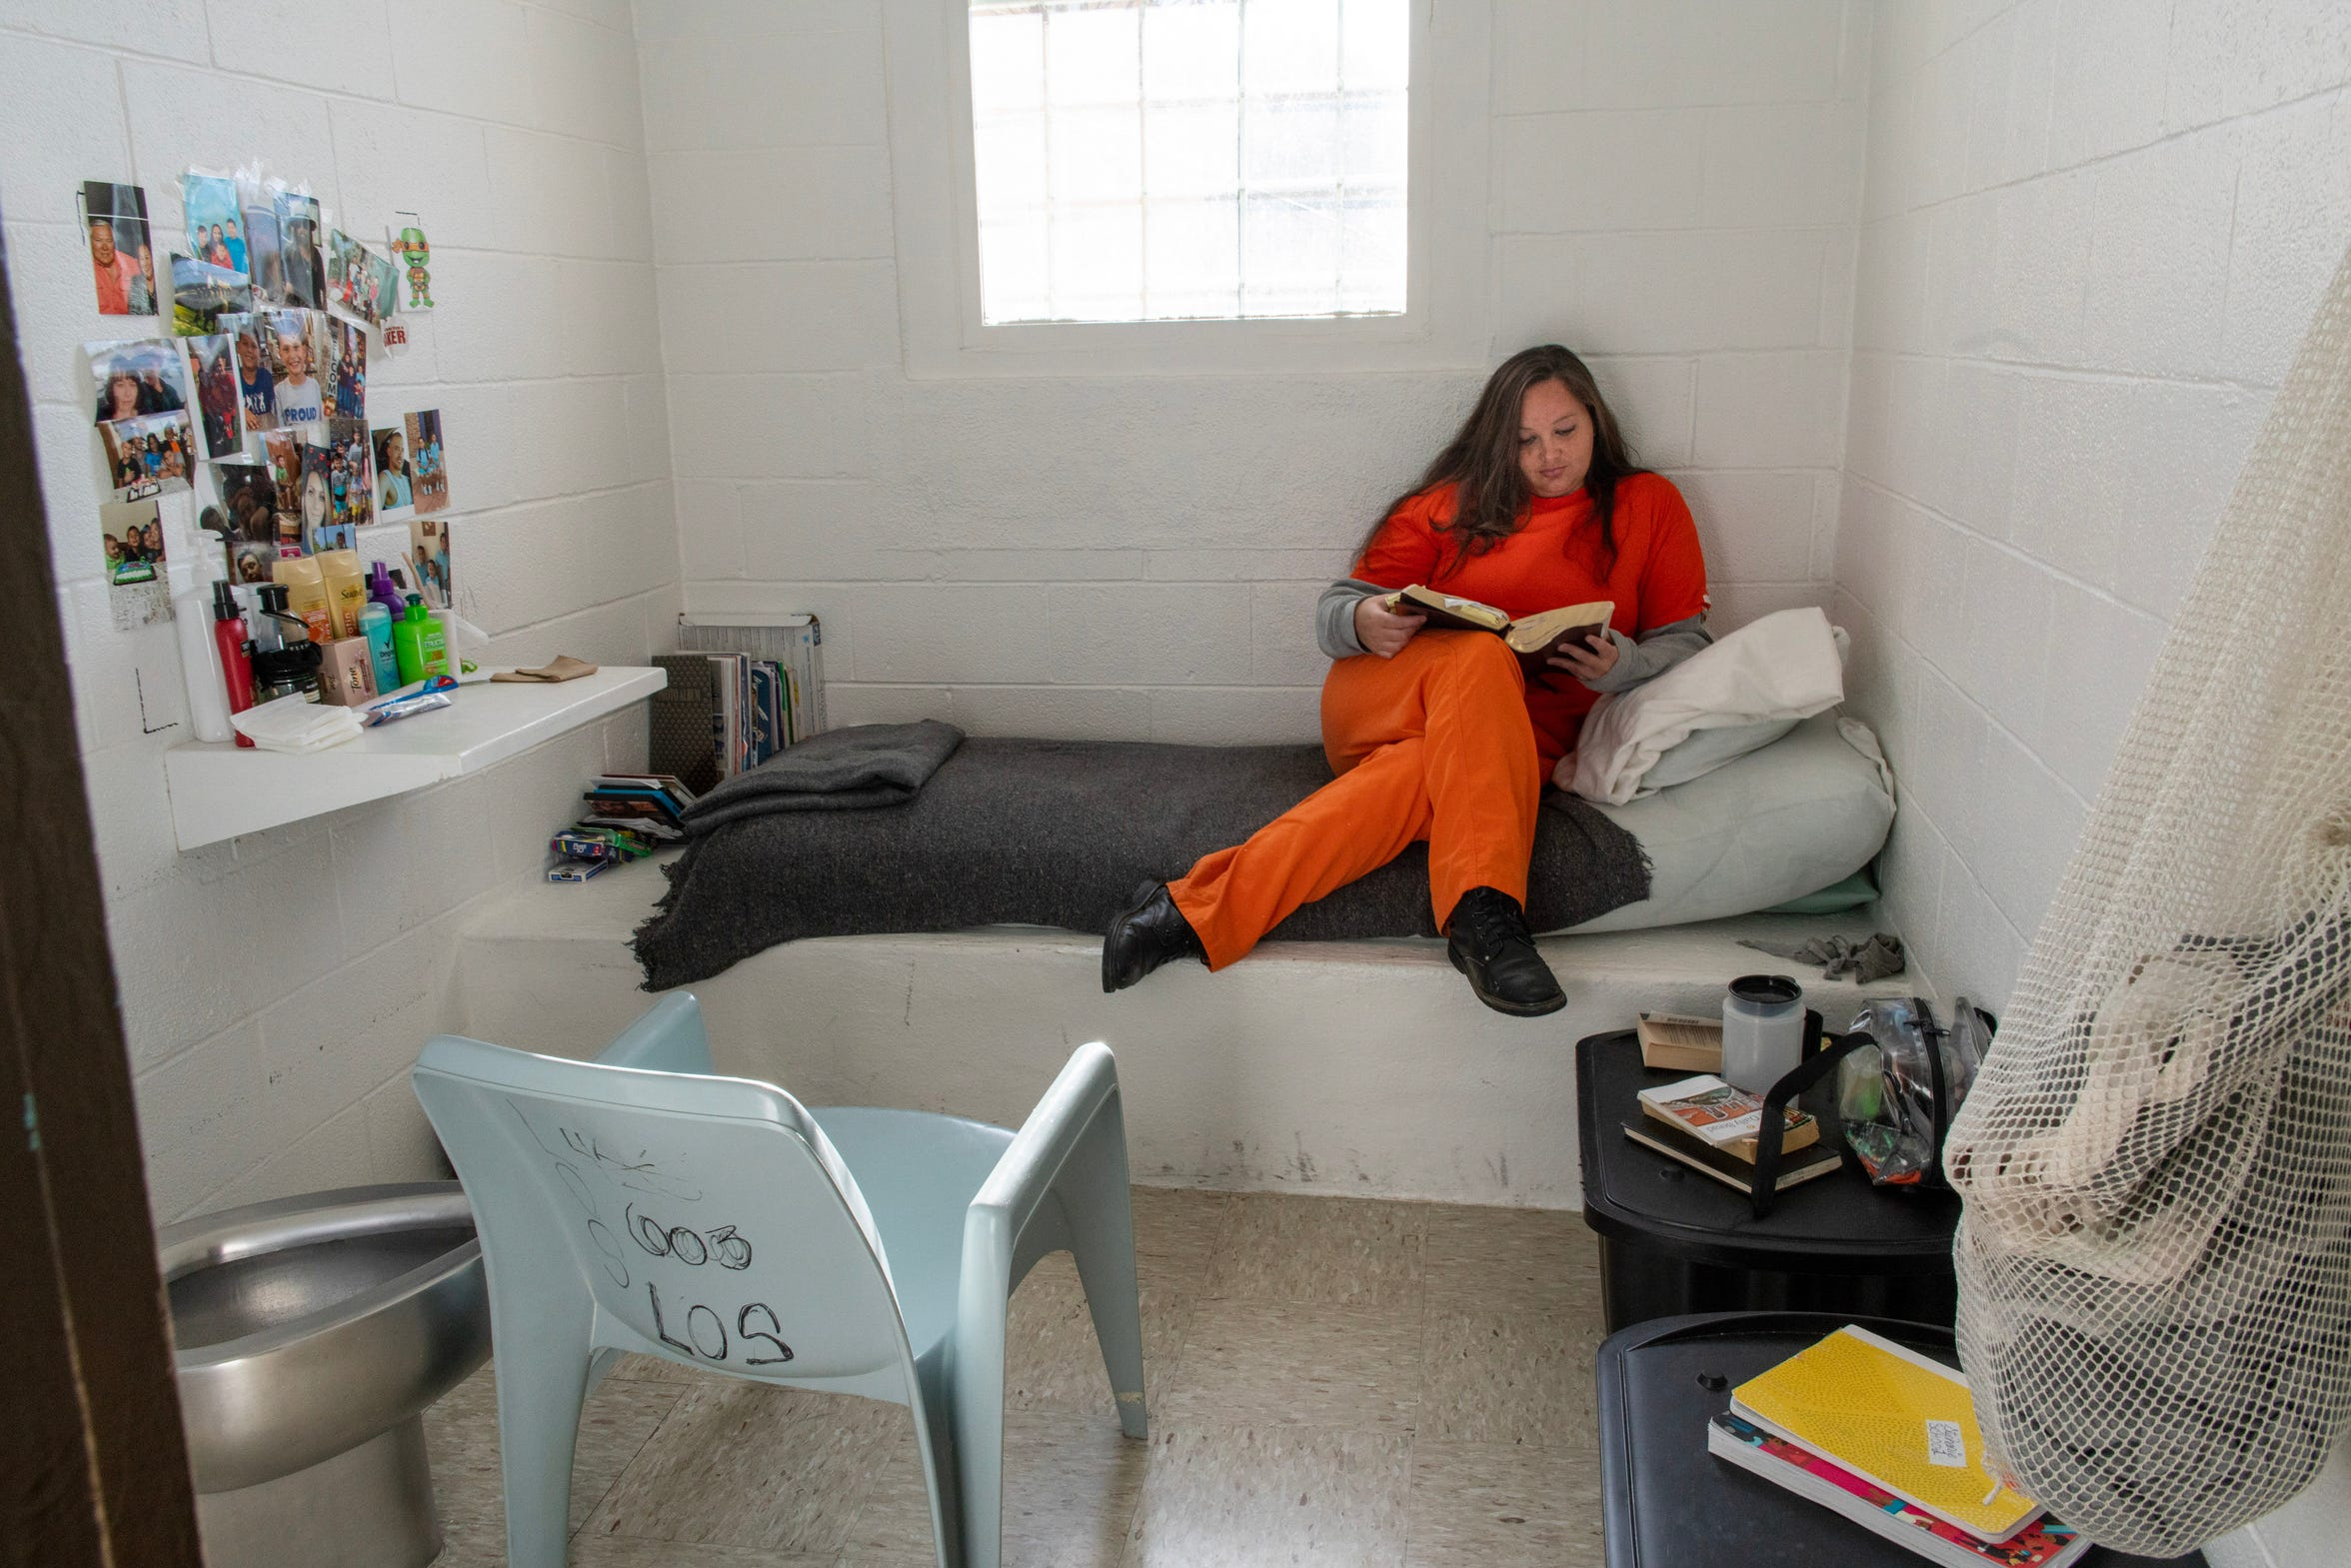 Stephanie Baker reading in her cell in the Springer Correctional Center in Springer. She was housed in the low security section of the prison, where inmates have private quarters.